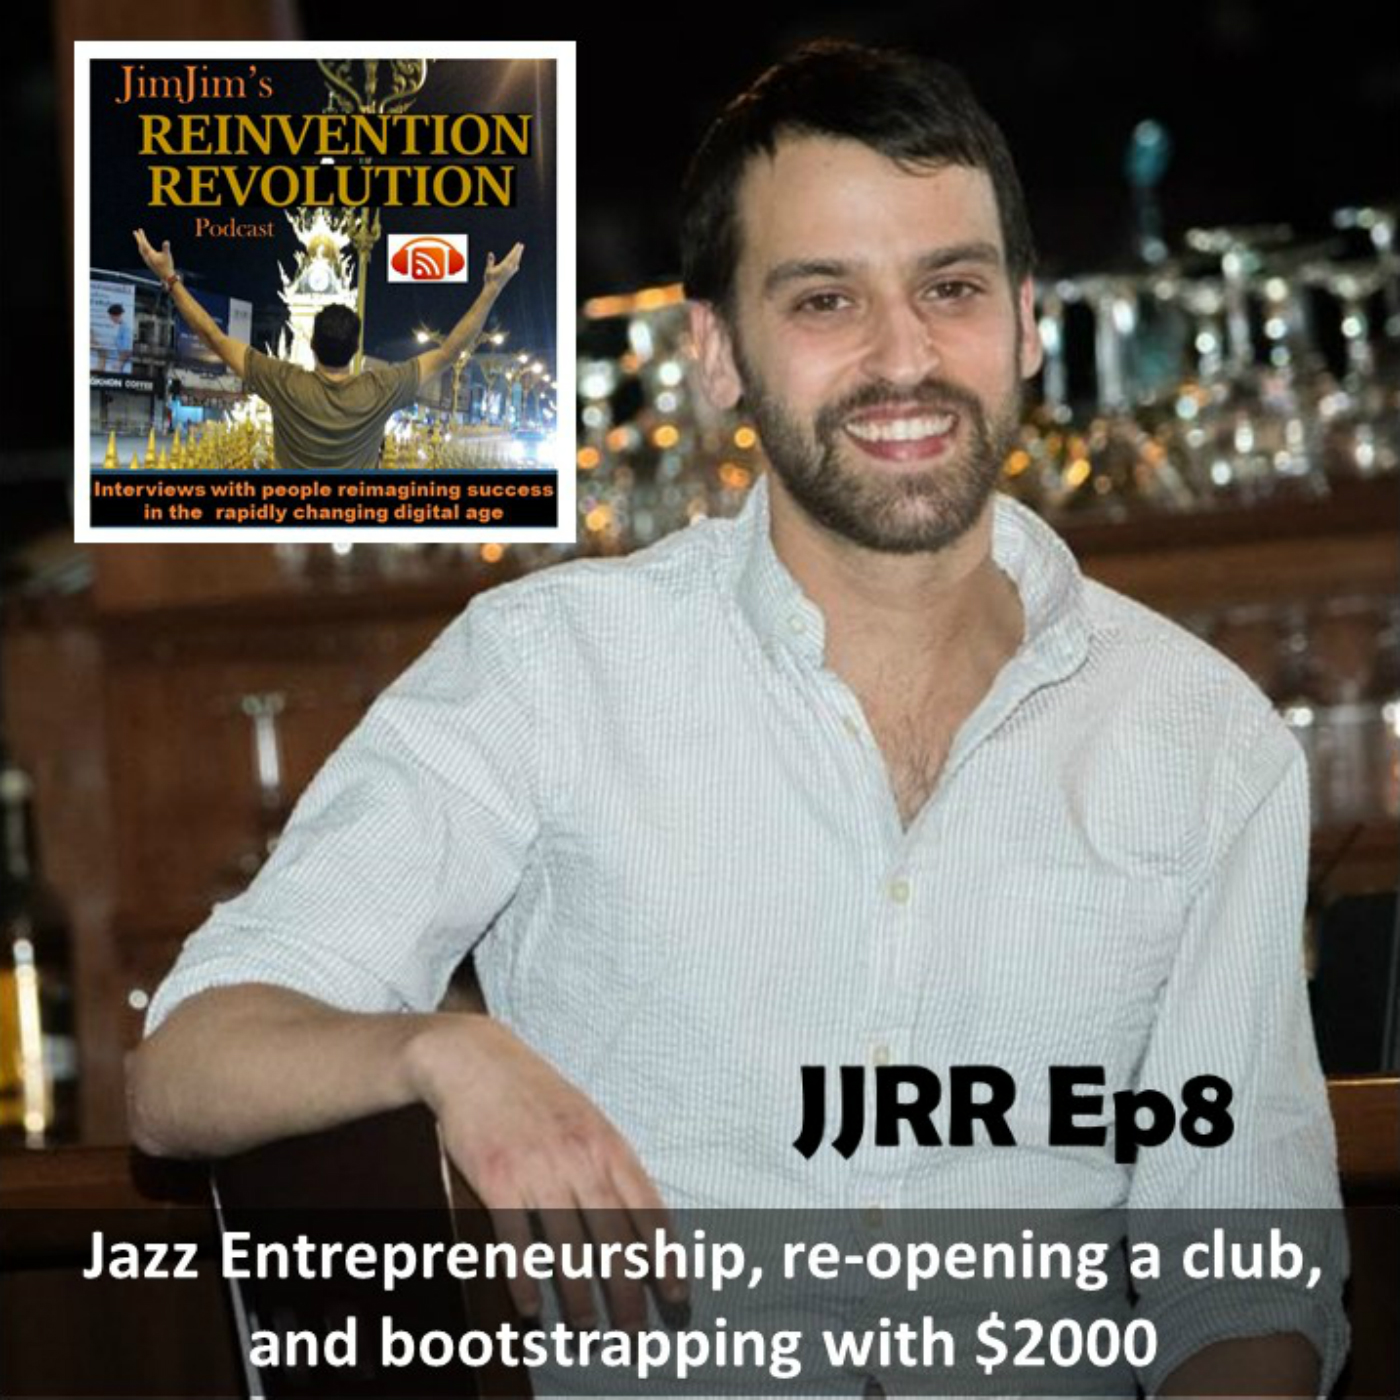 JJRR Ep8  Jazz Entrepreneurship, re-opening a club, and bootstrapping with $2000